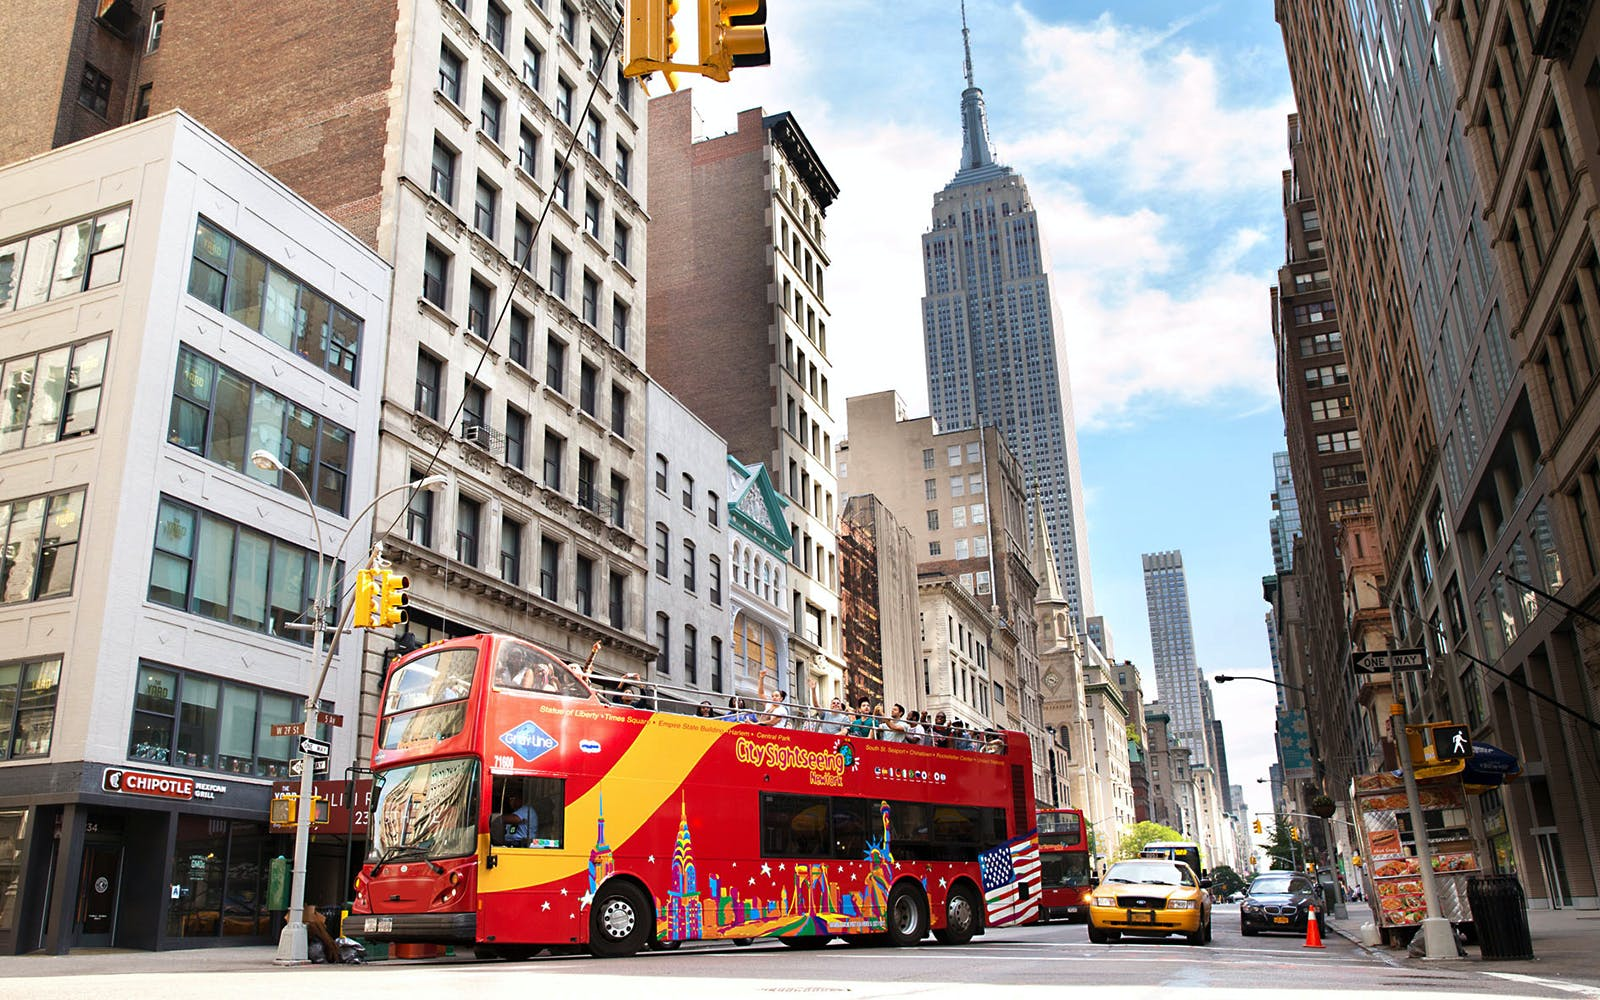 skip the line empire state building tickets & hop on hop off combo-2